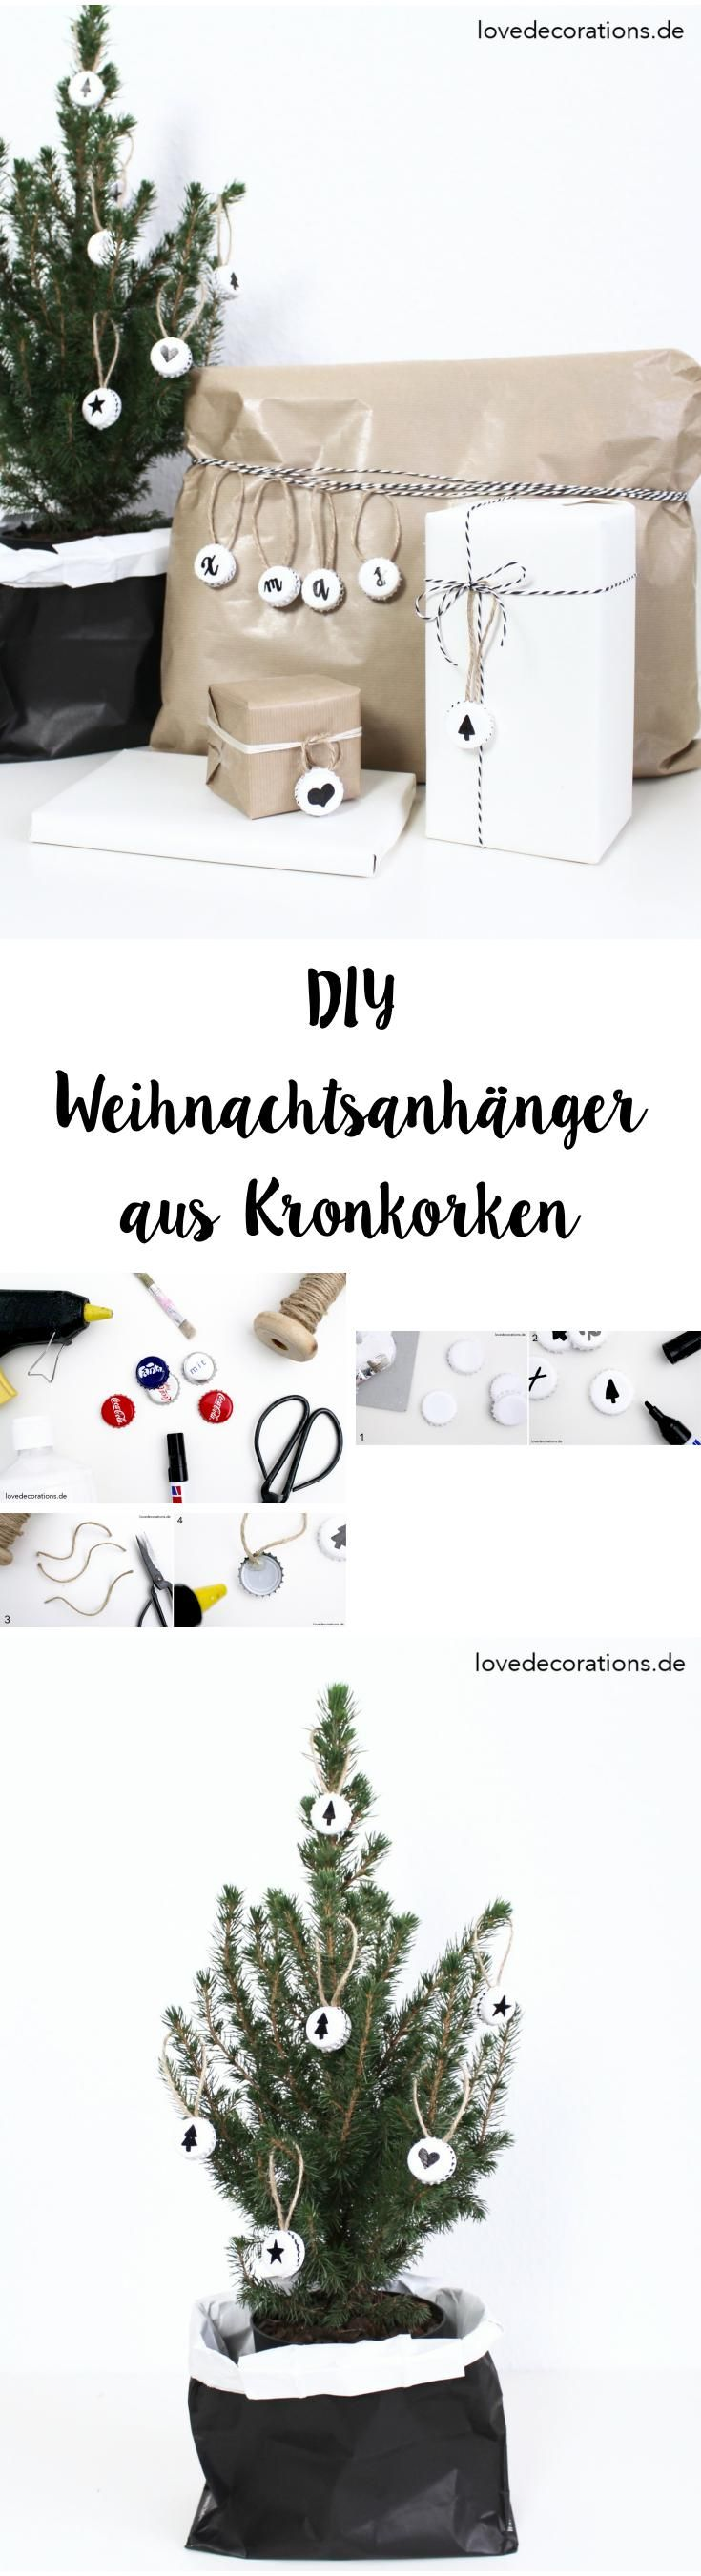 DIY Weihnachtsanhänger aus Kronkorken | DIY Christmas Ornaments made of Crown Cork